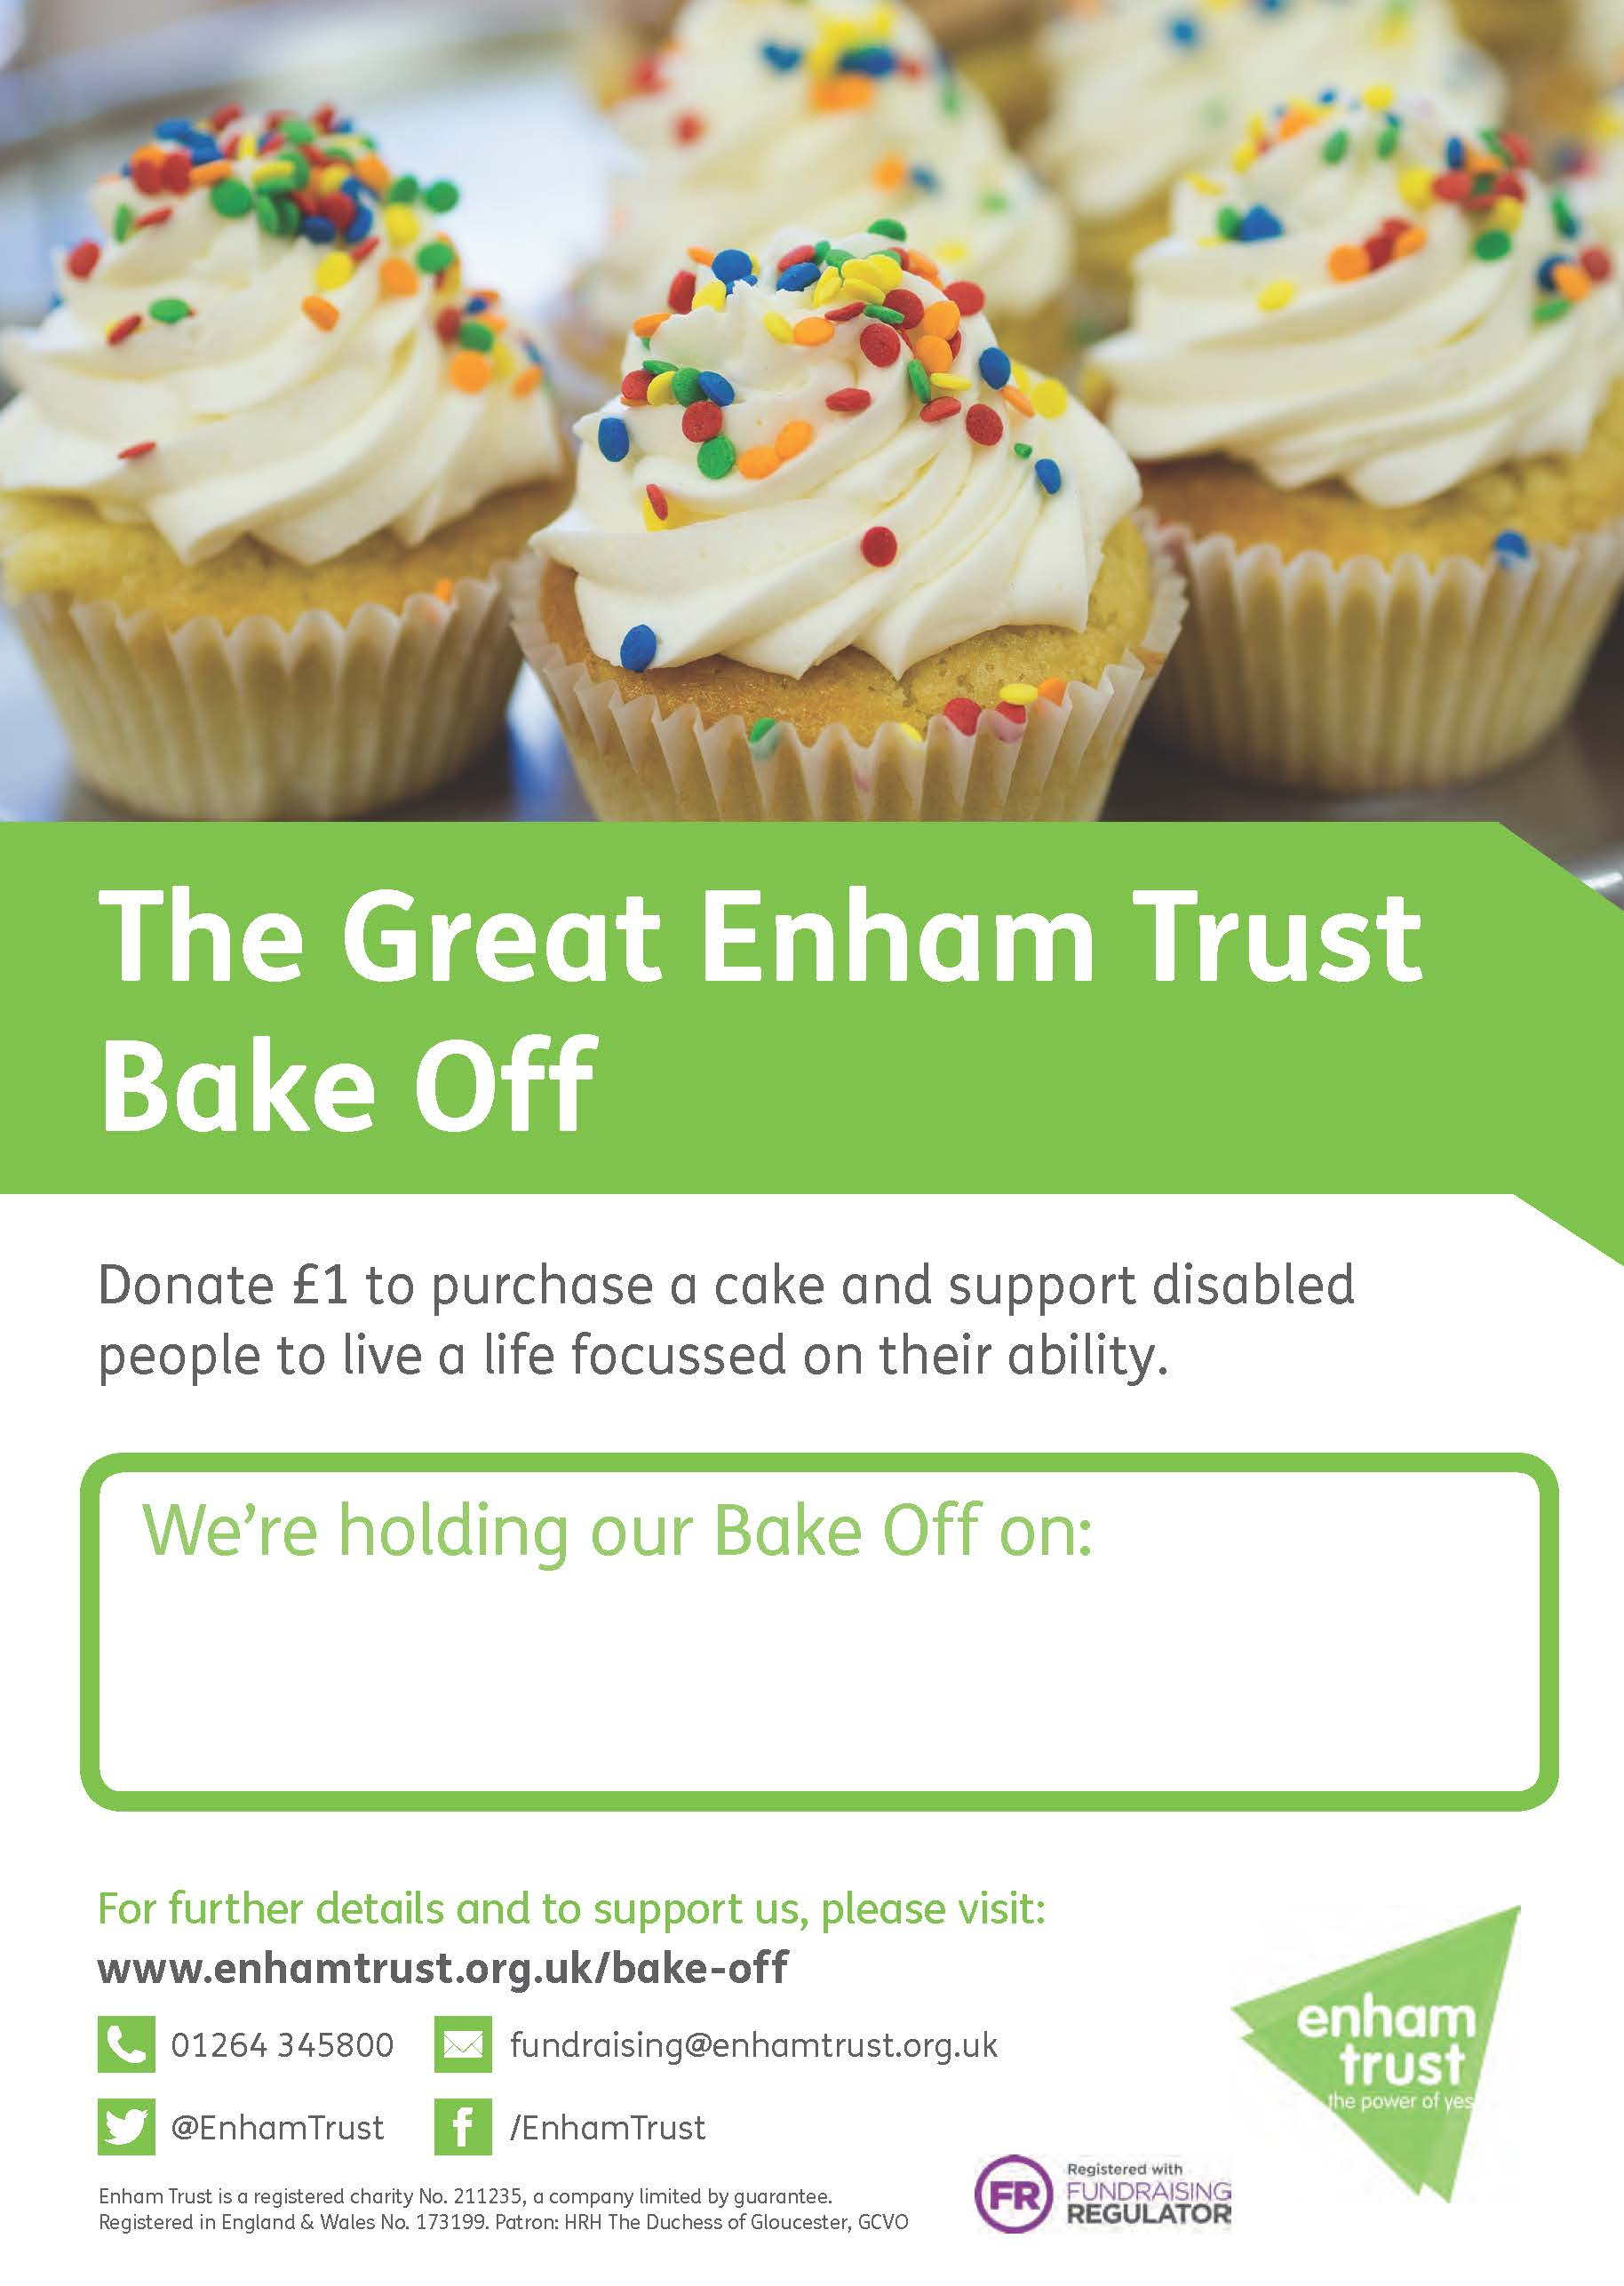 Download the Great Enham Bake Off poster